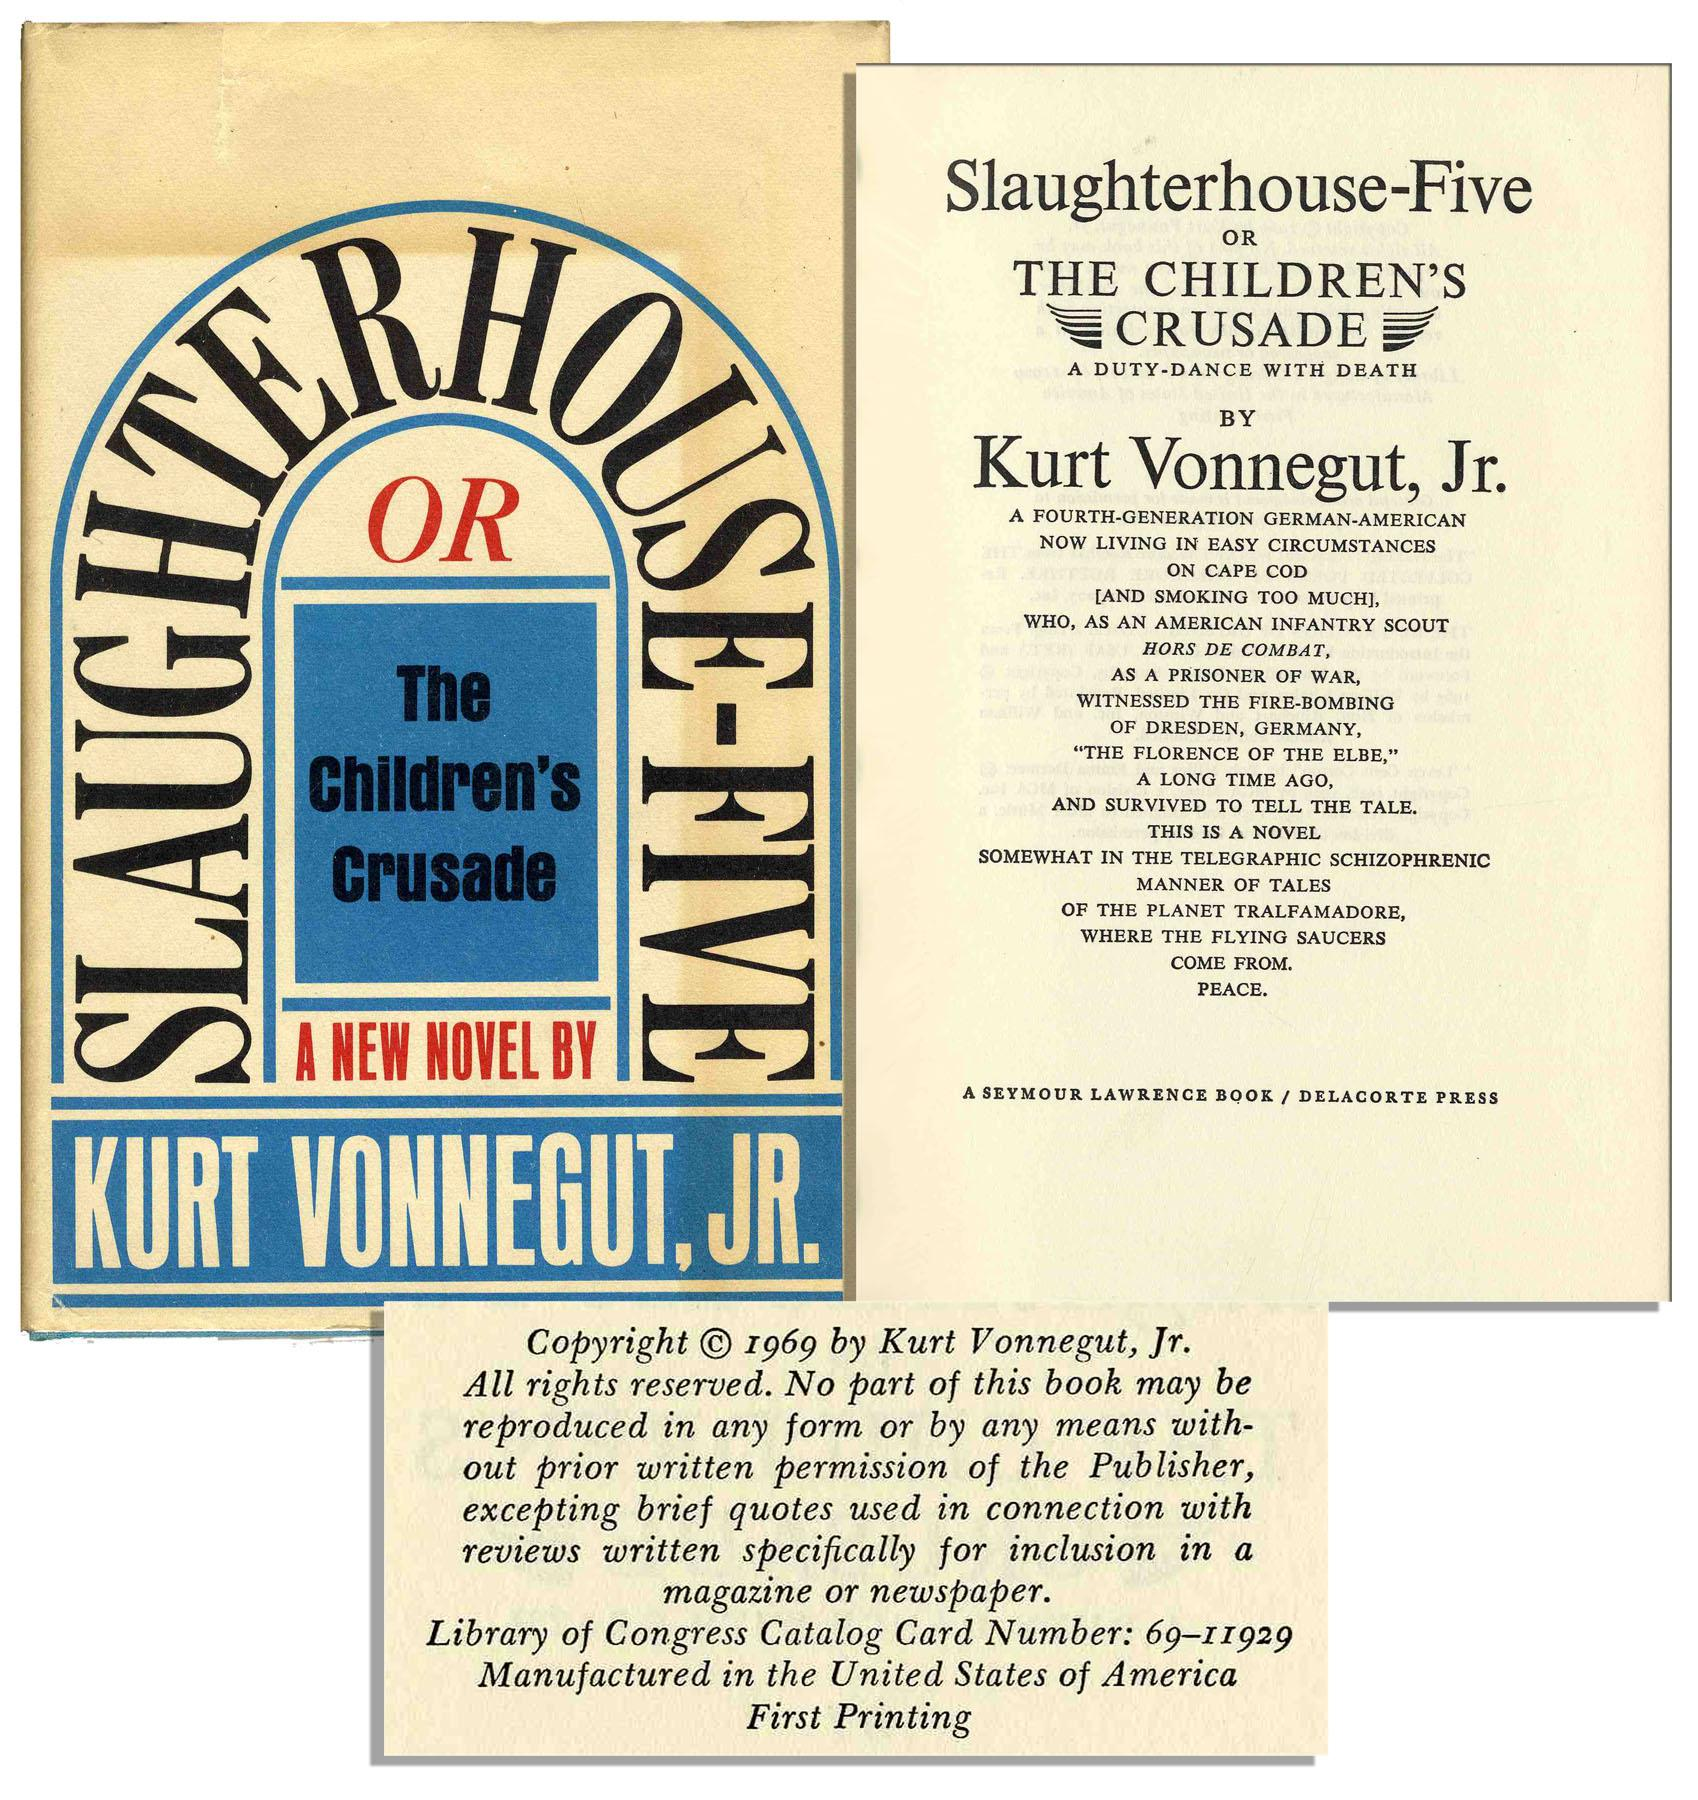 an overview of the slaughterhouse five in 1969 by vonnegut Vonnegut's words: a reading kurt vonnegut, the satirical author of many novels and short stories, has died at age 84 many of his novels were best sellers and include the darkly humorous works cat's cradle and slaughterhouse-five.